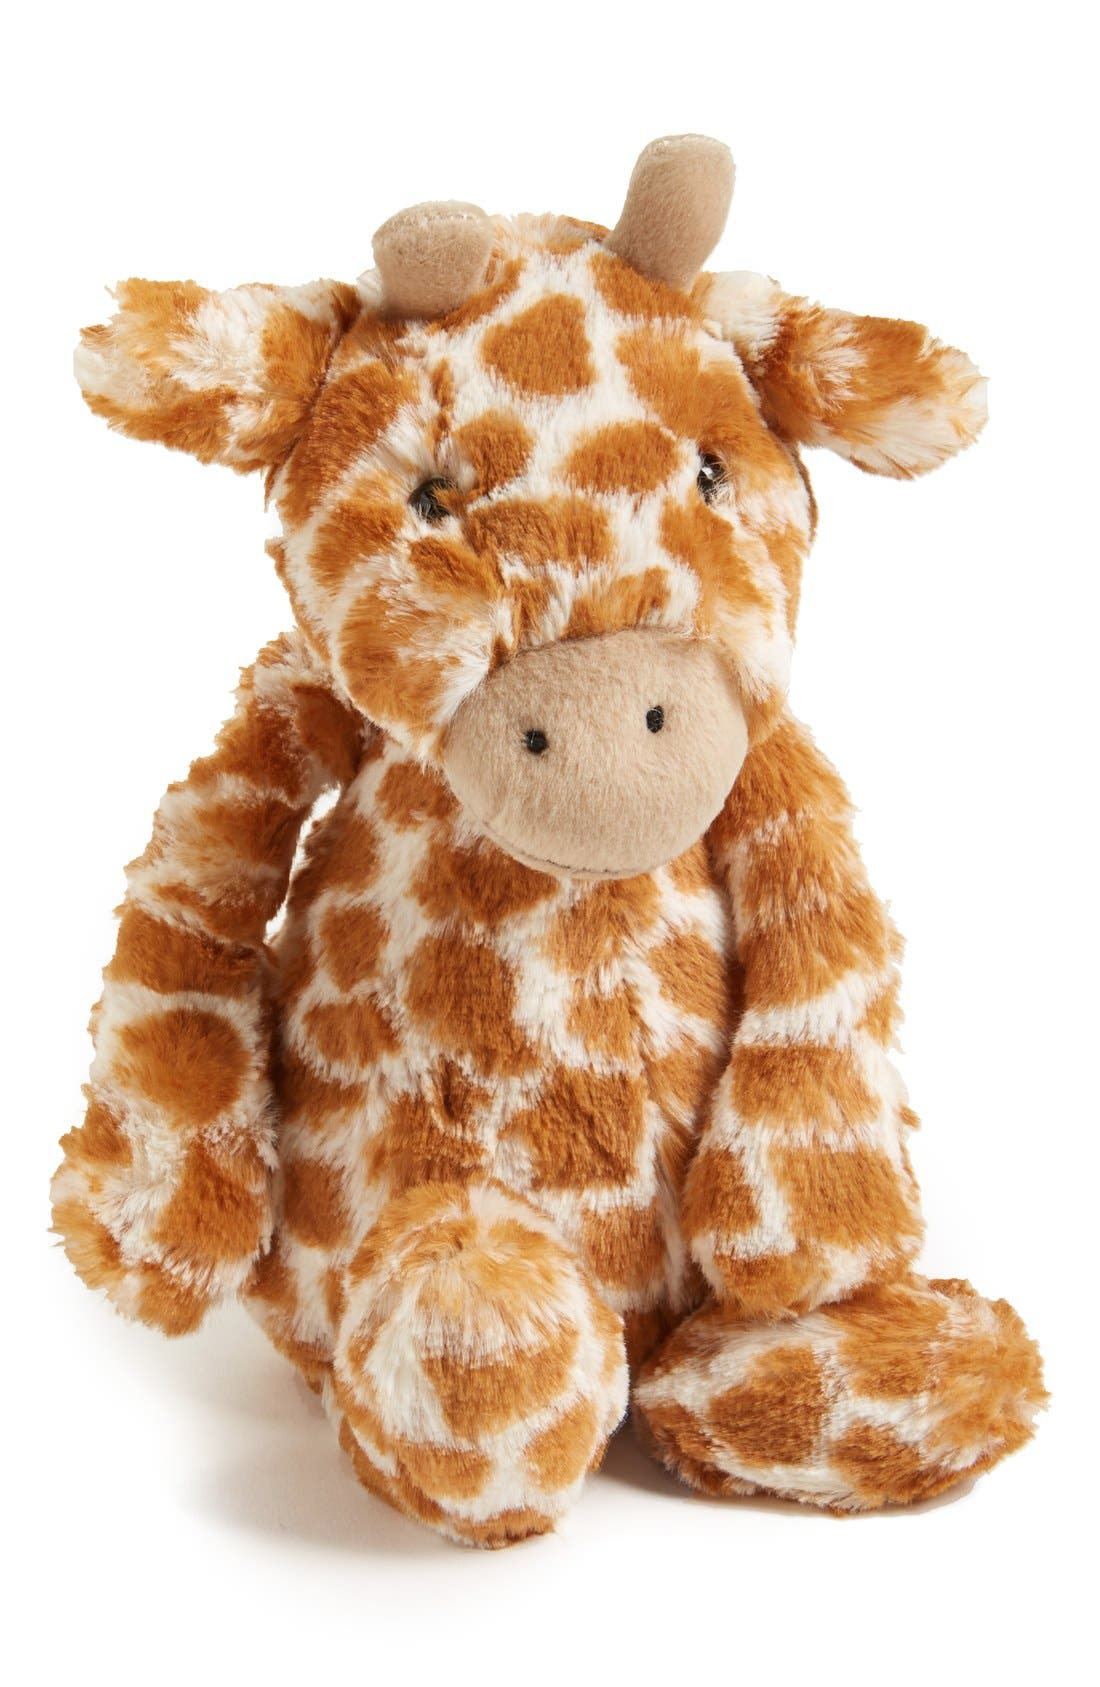 Alternate Image 1 Selected - Jellycat Bashful Giraffe Stuffed Animal